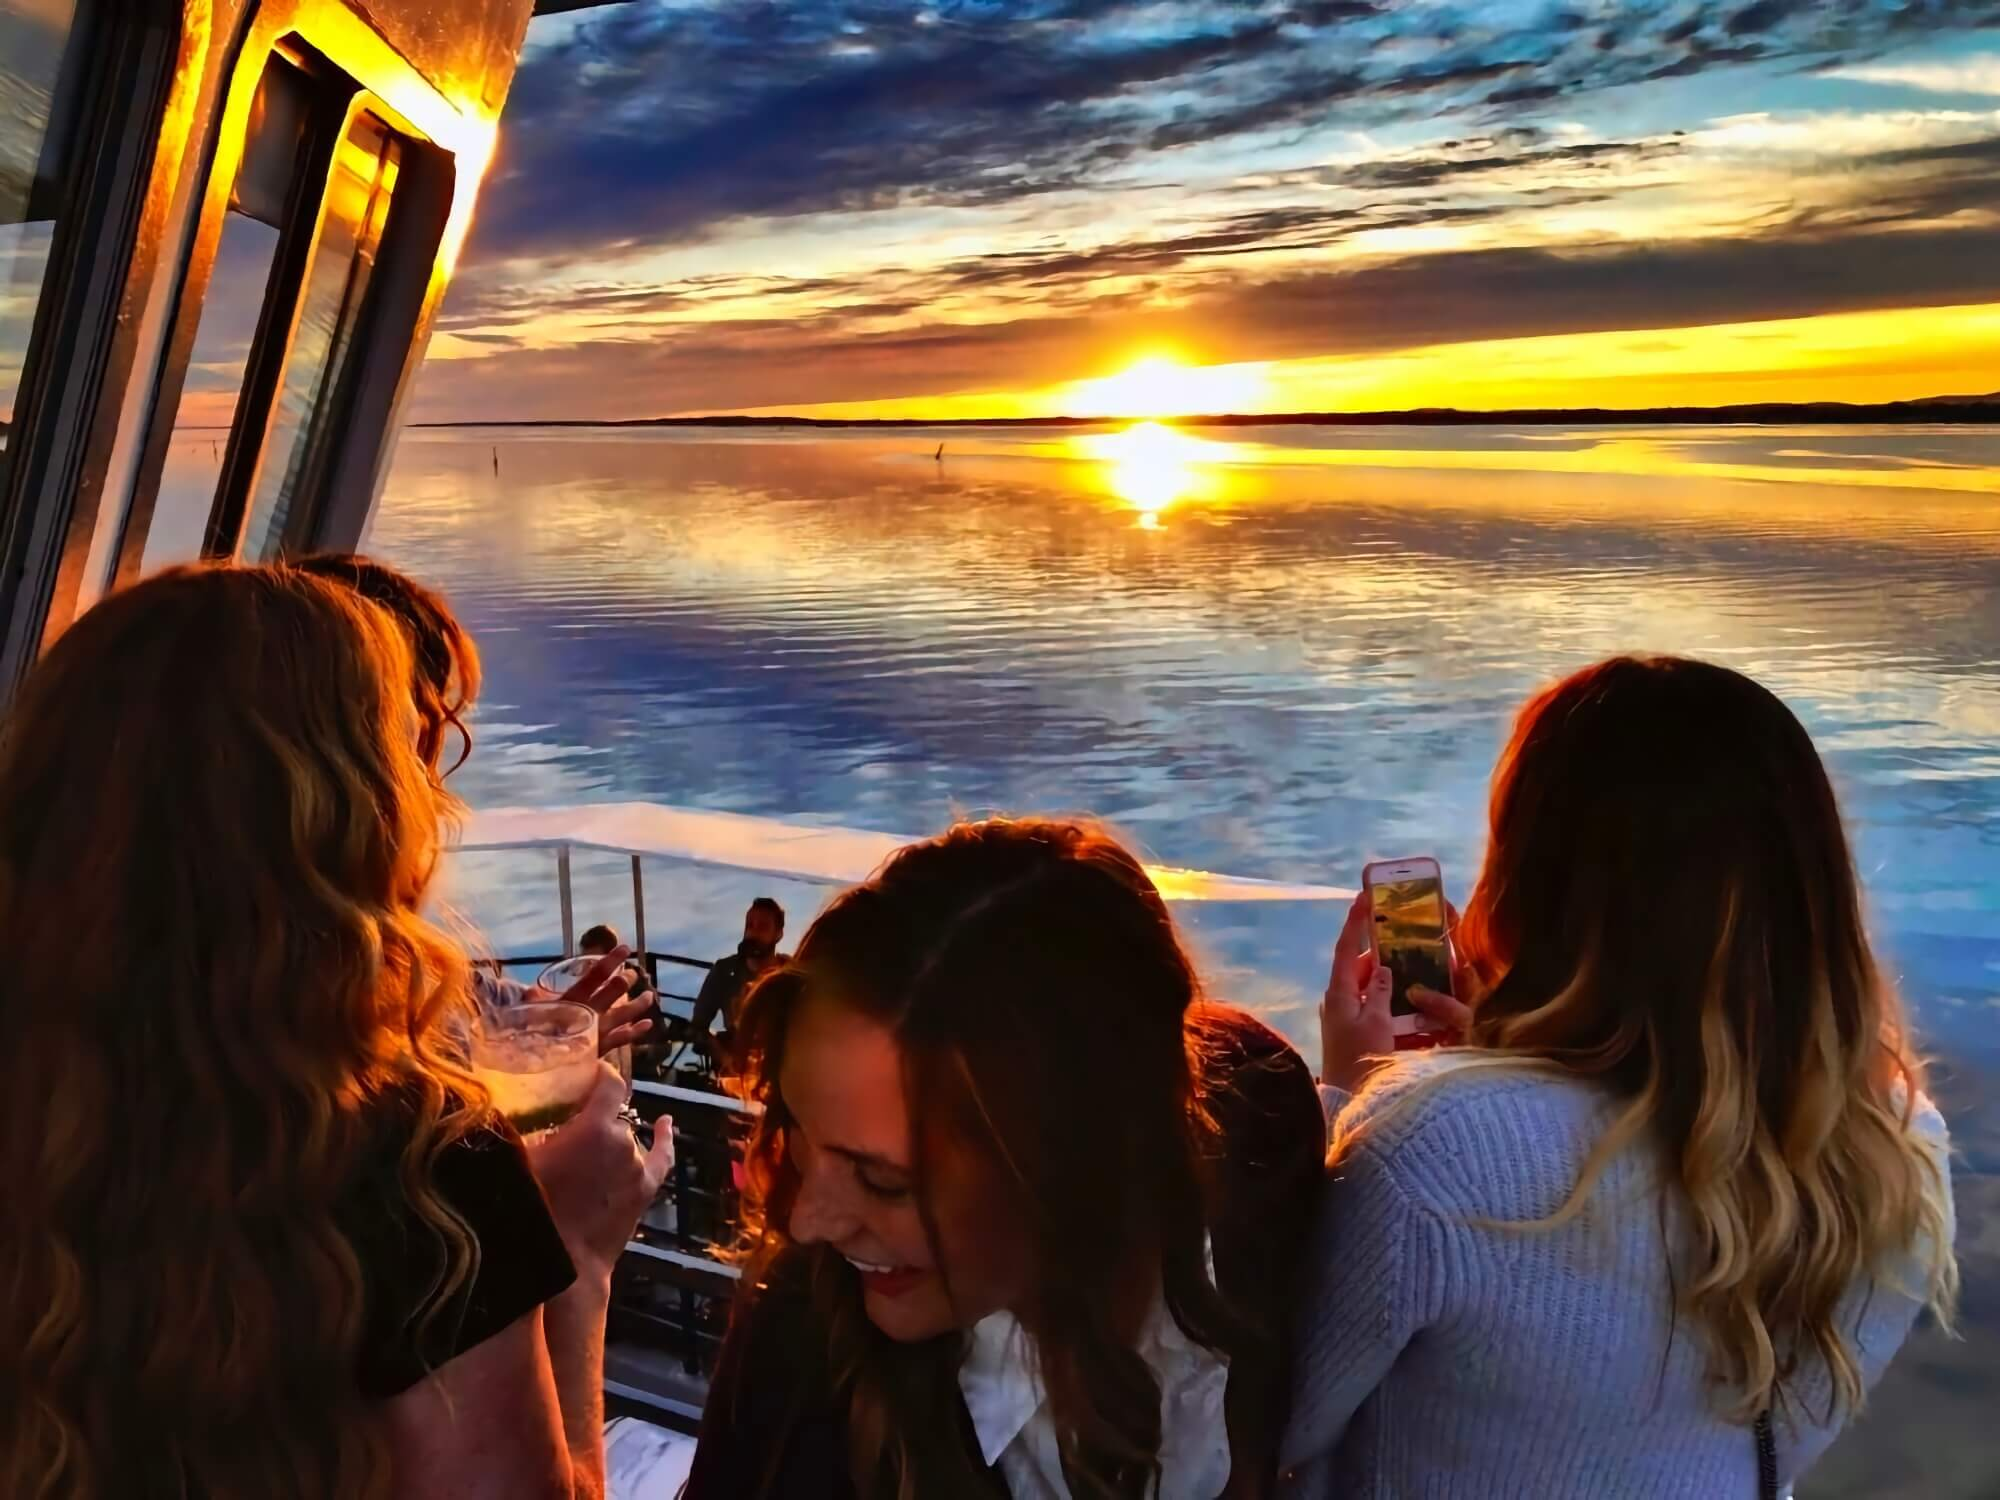 Passengers enjoying a beautiful sunset while on a boat cruise off the north shore of Manitoulin Island.